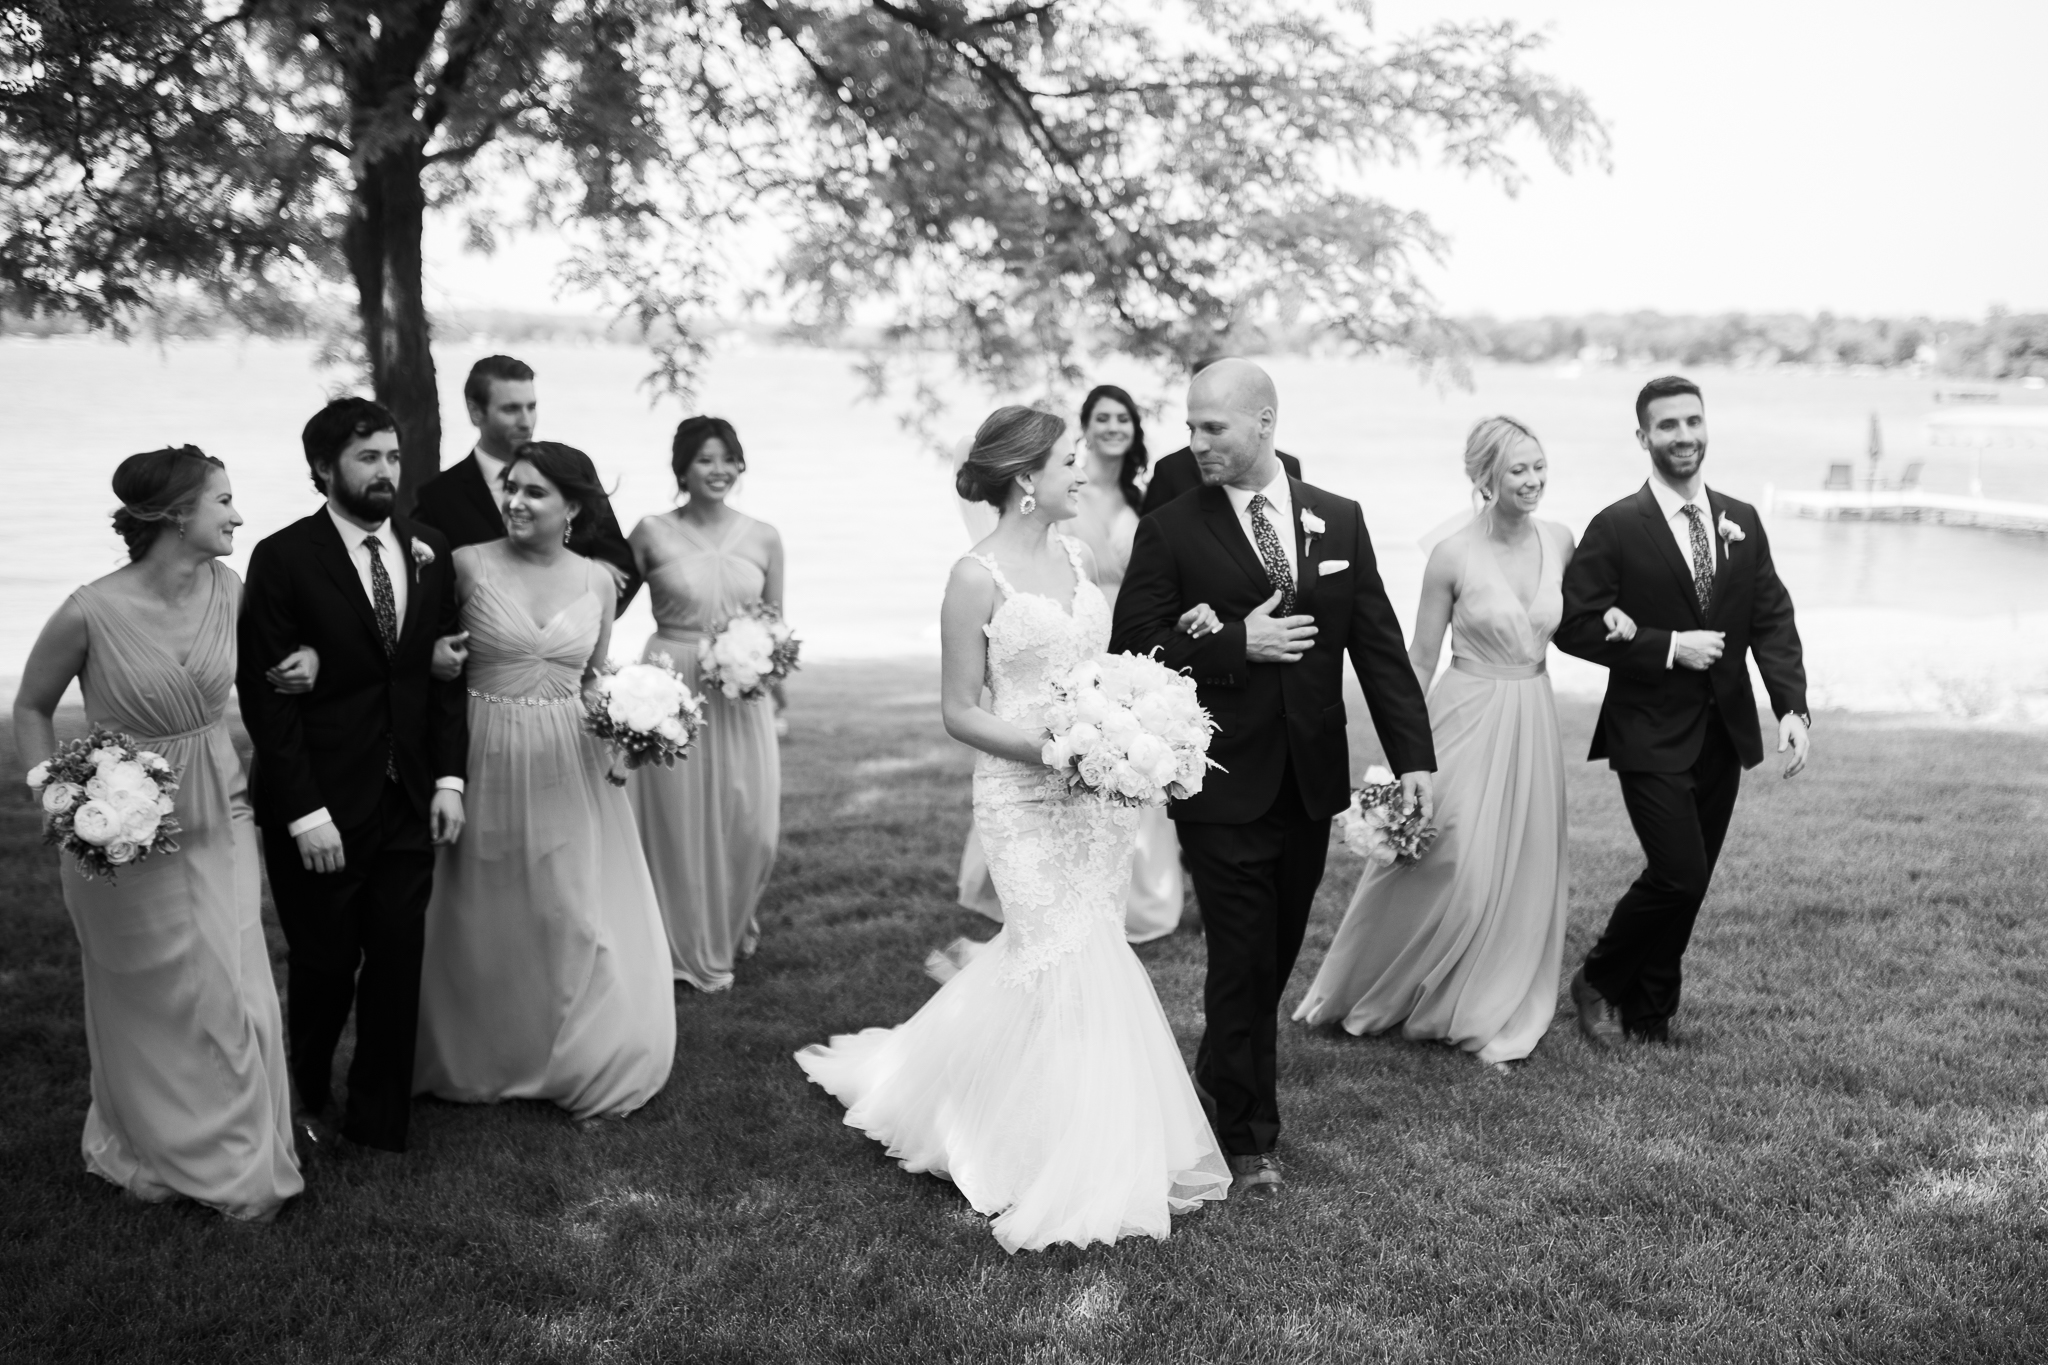 Backyard-Wisconsin-Lake-wedding_097.jpg